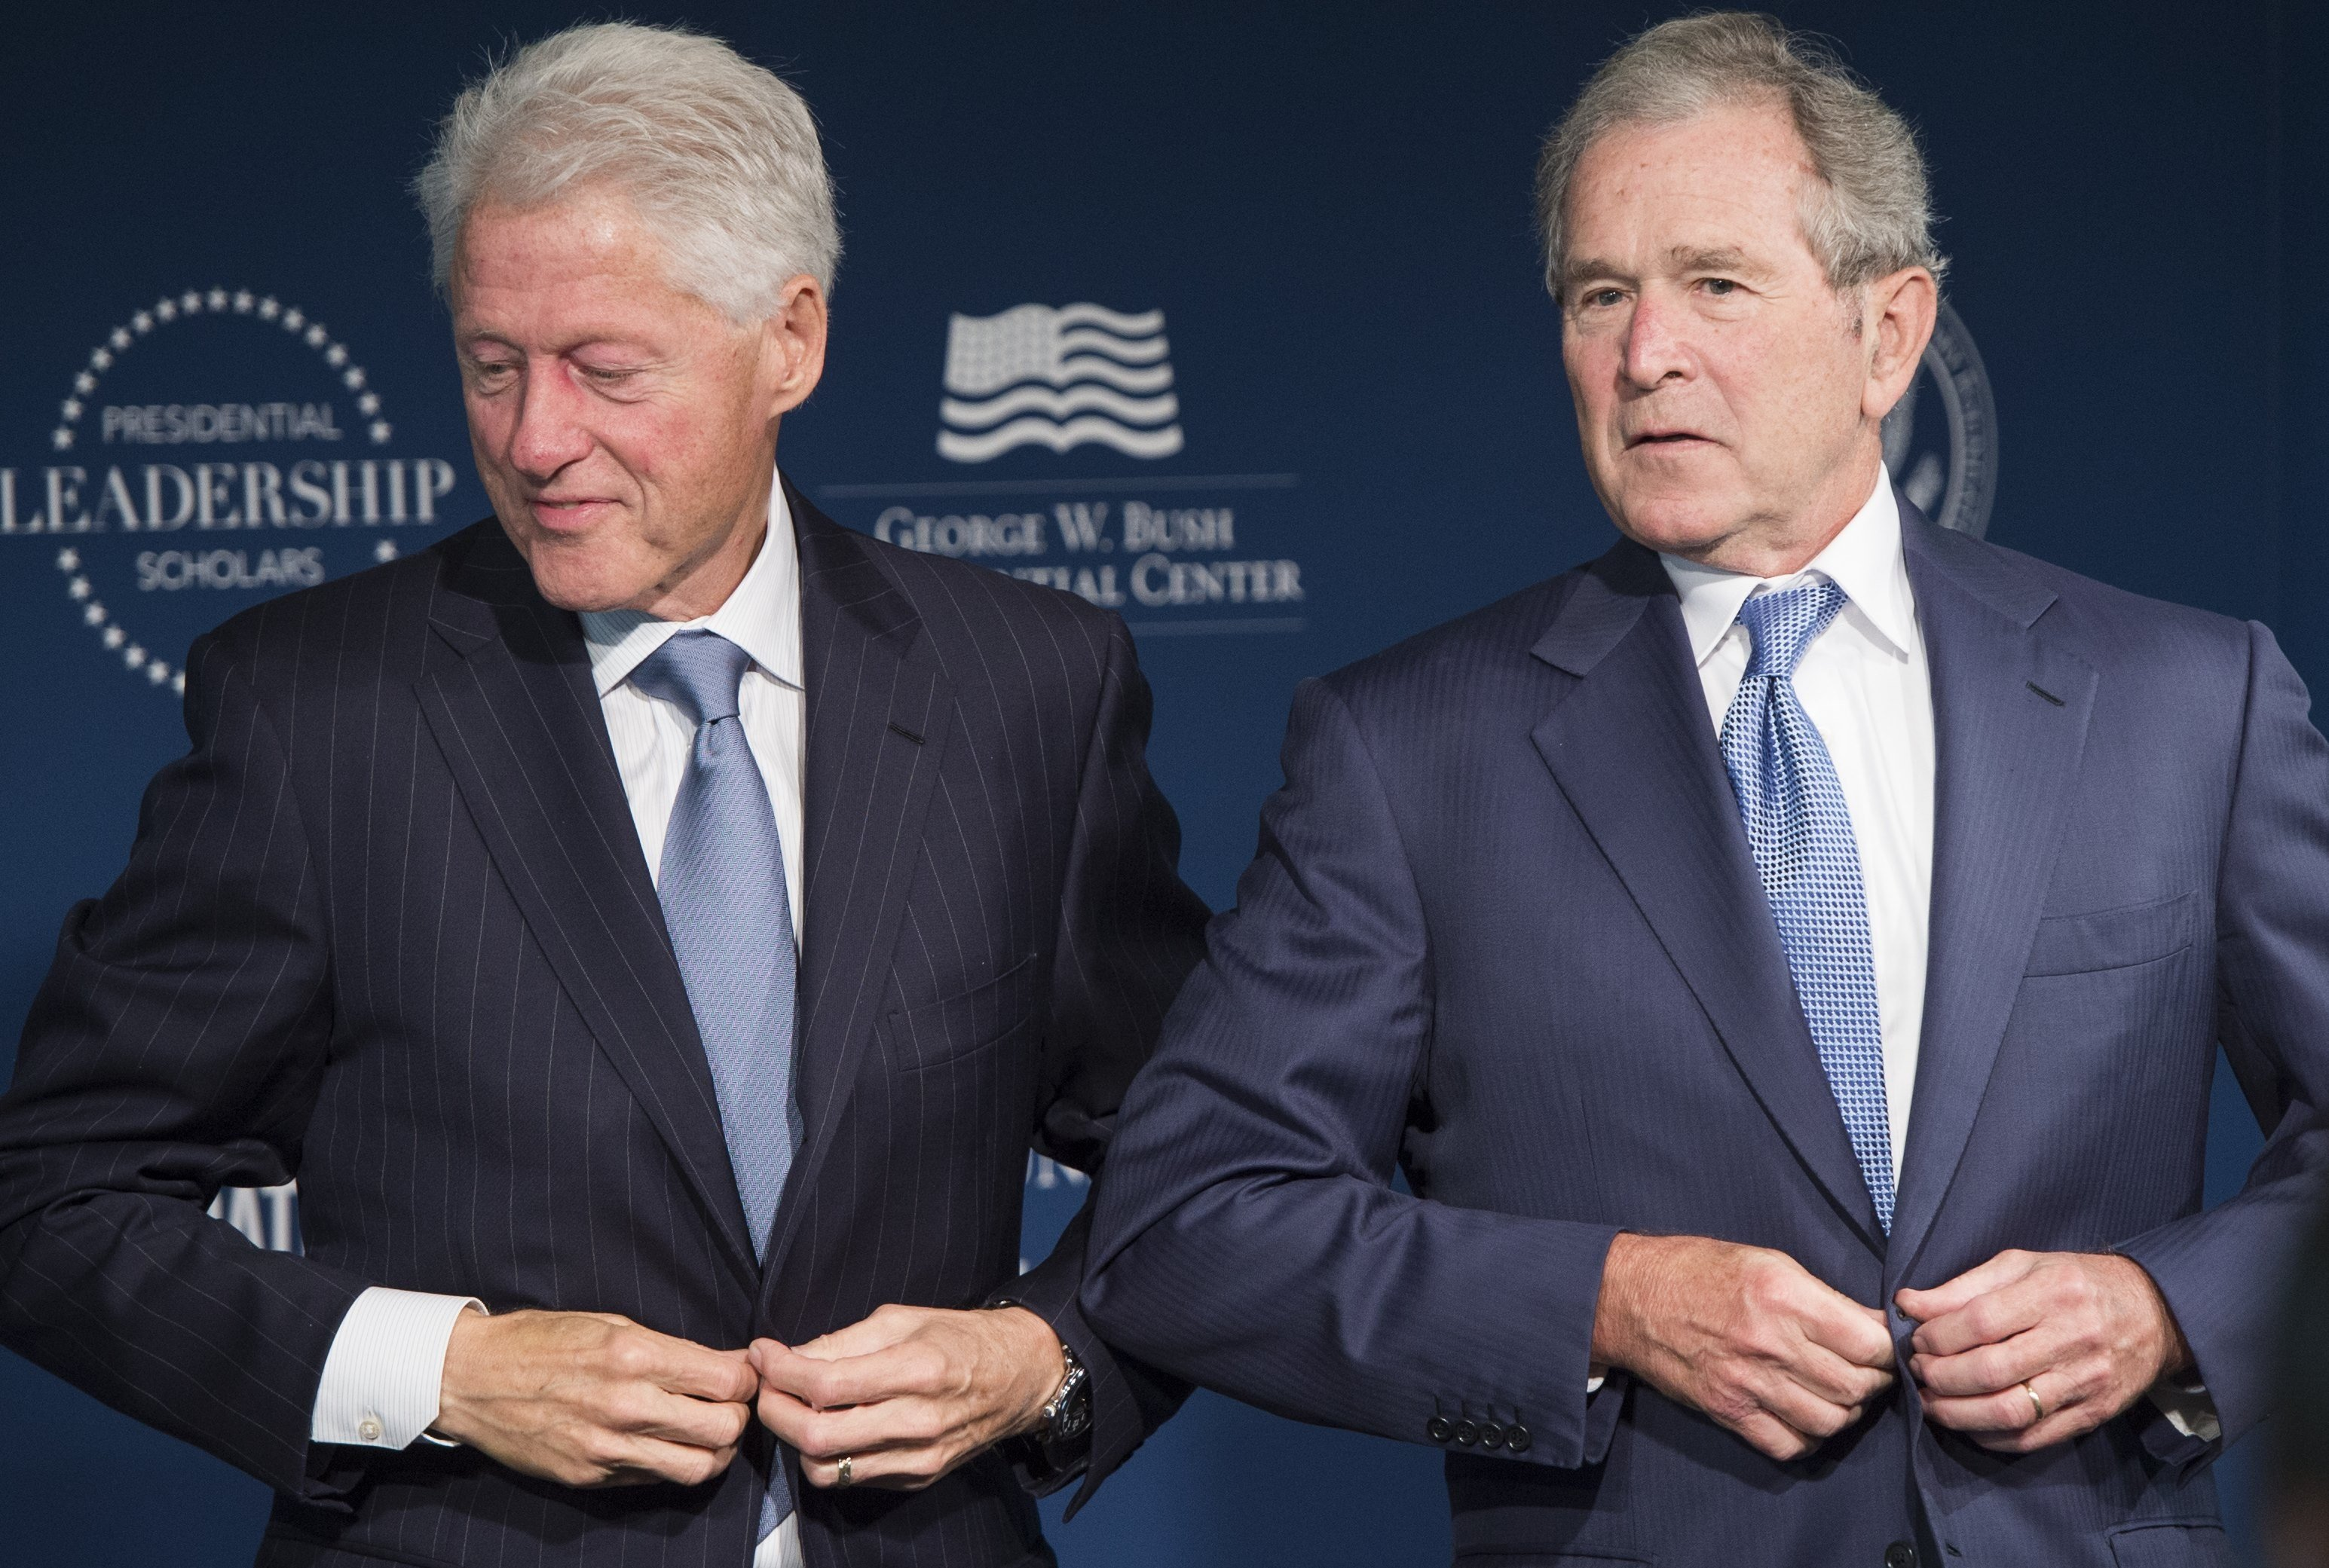 Former US President Bill Clinton and former US President George W. Bush stand to leave after speaking during the launch of the Presidential Leadership Scholars Program at the Newseum in Washington on Sept. 8, 2014.